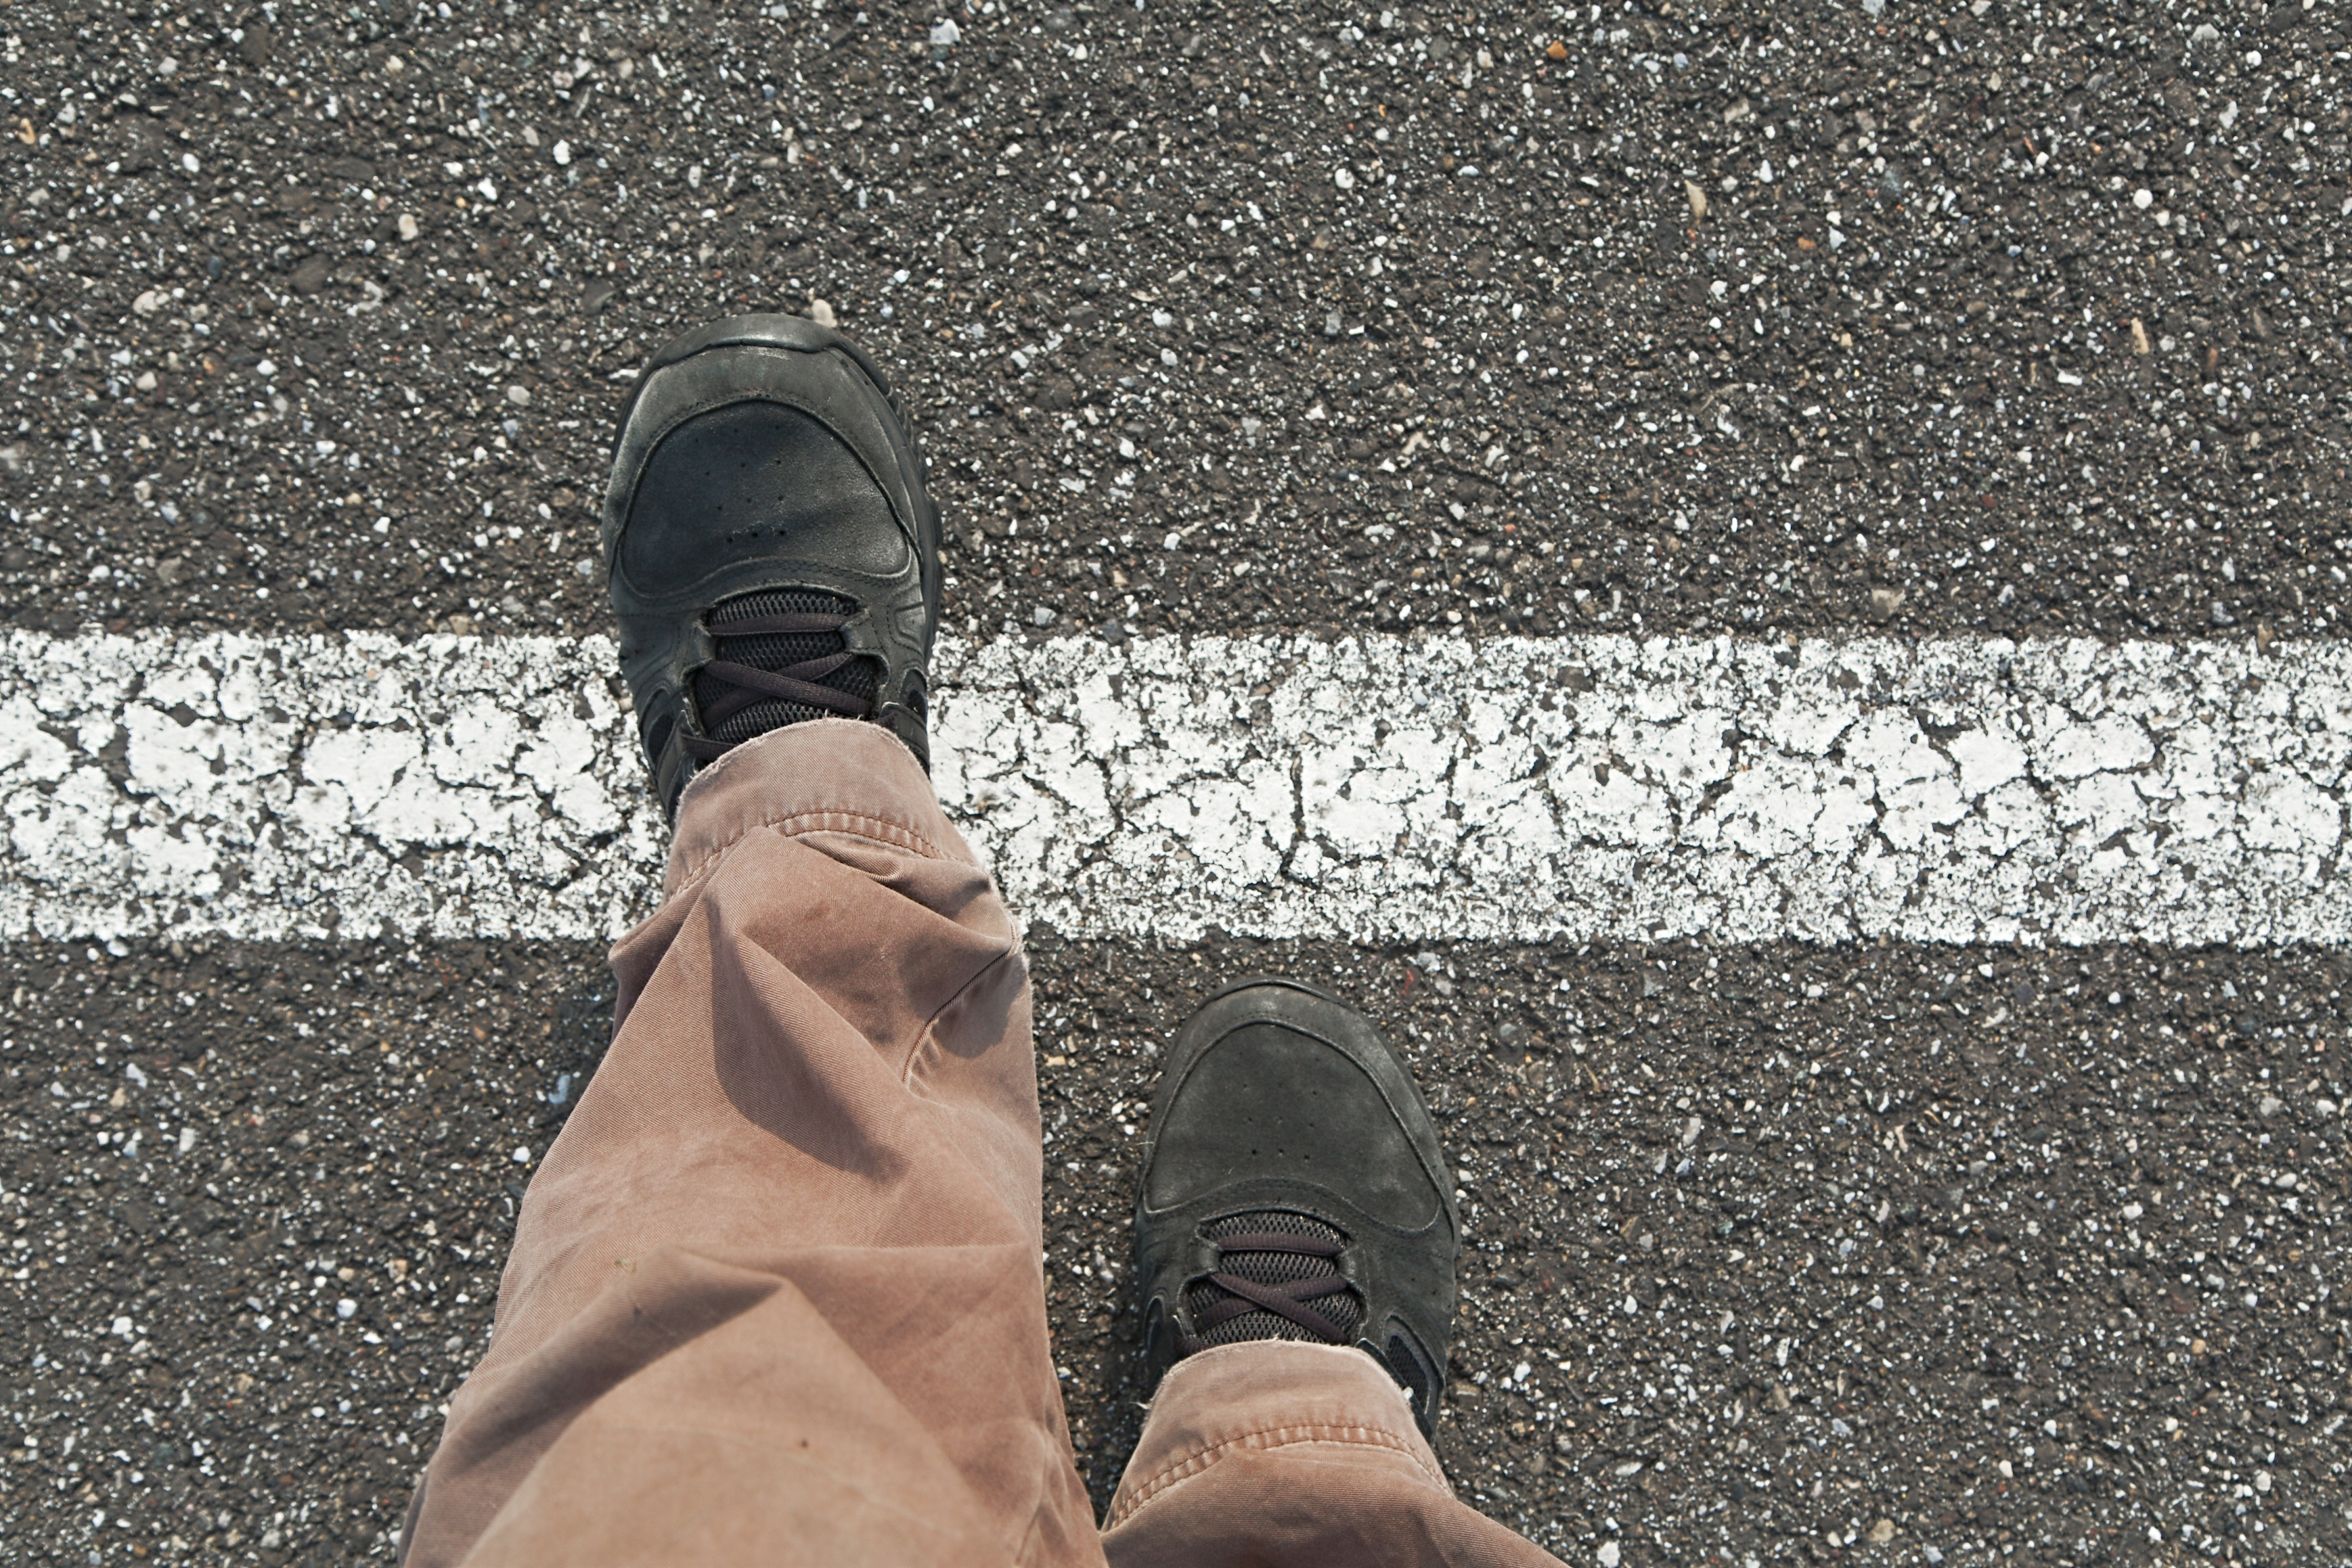 Crossing the Integrity Line: How to Handle Ethical Dilemmas